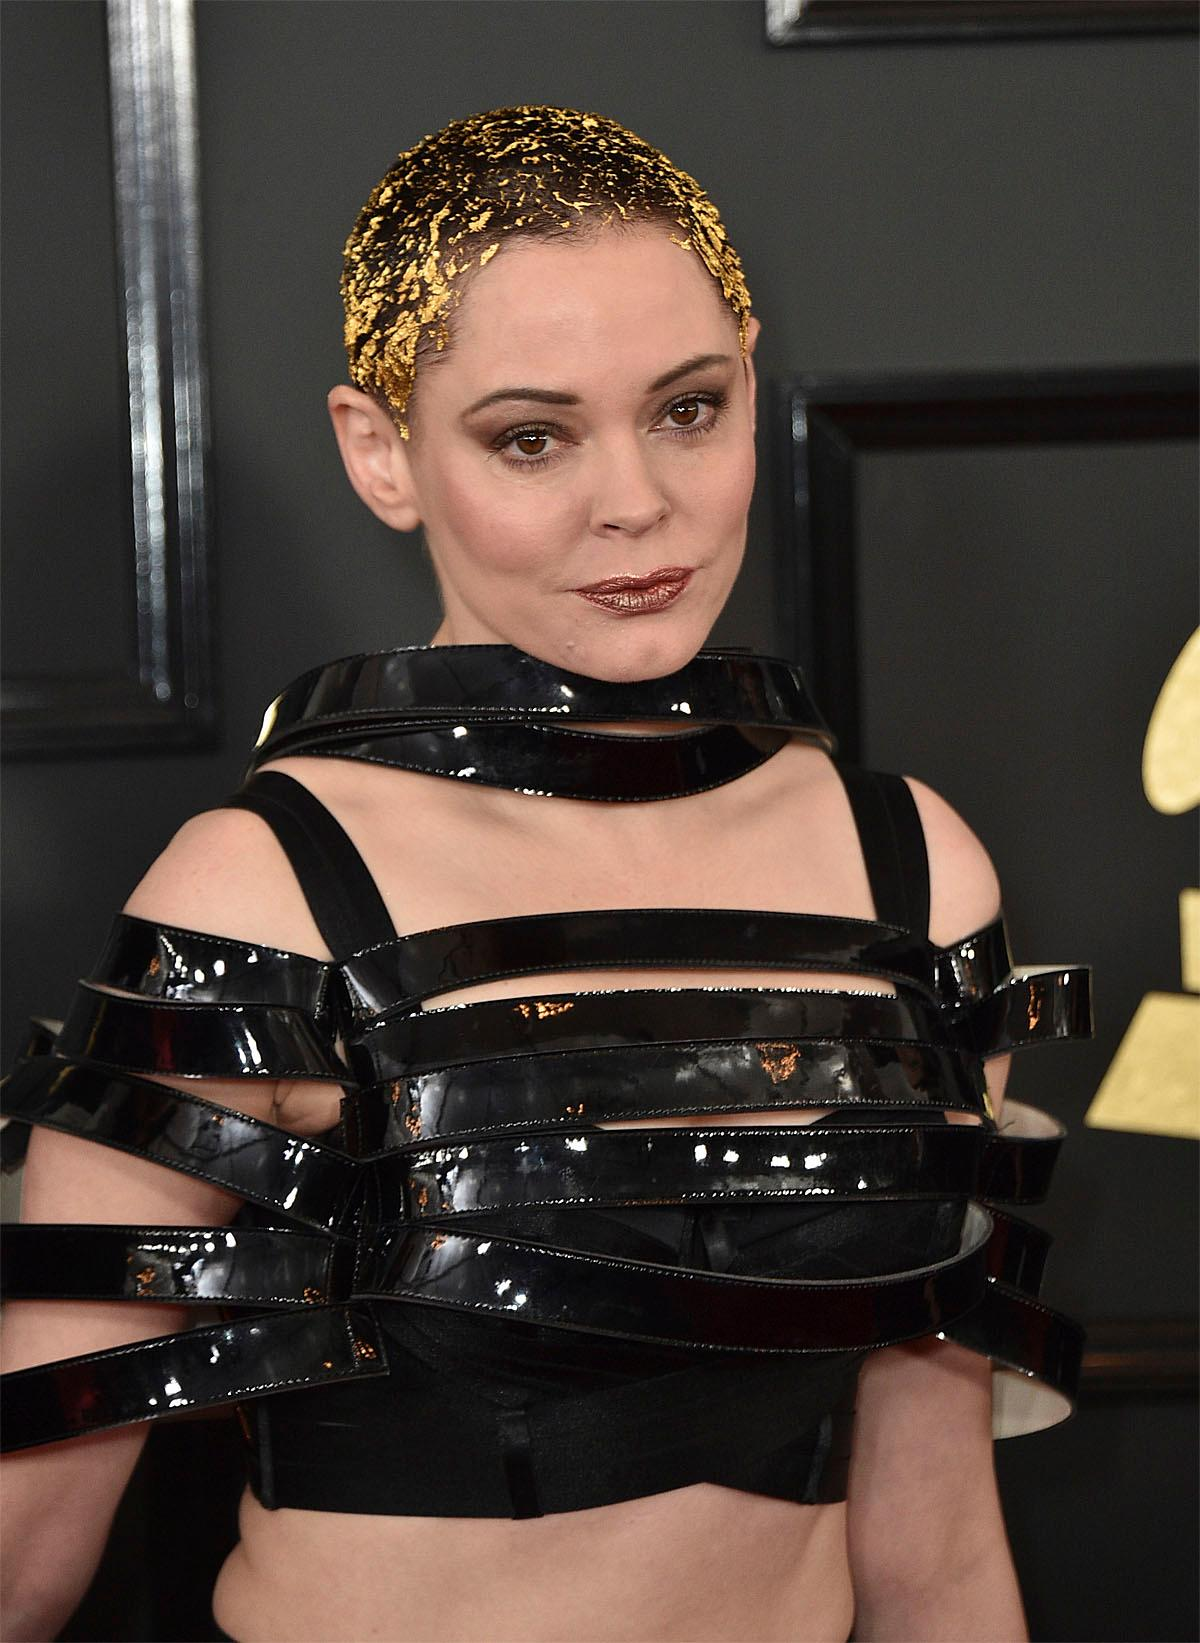 Rose McGowan arrives at the 59th annual Grammy Awards at the Staples Center on Sunday, Feb. 12, 2017, in Los Angeles. (Photo by Jordan Strauss/Invision/AP)